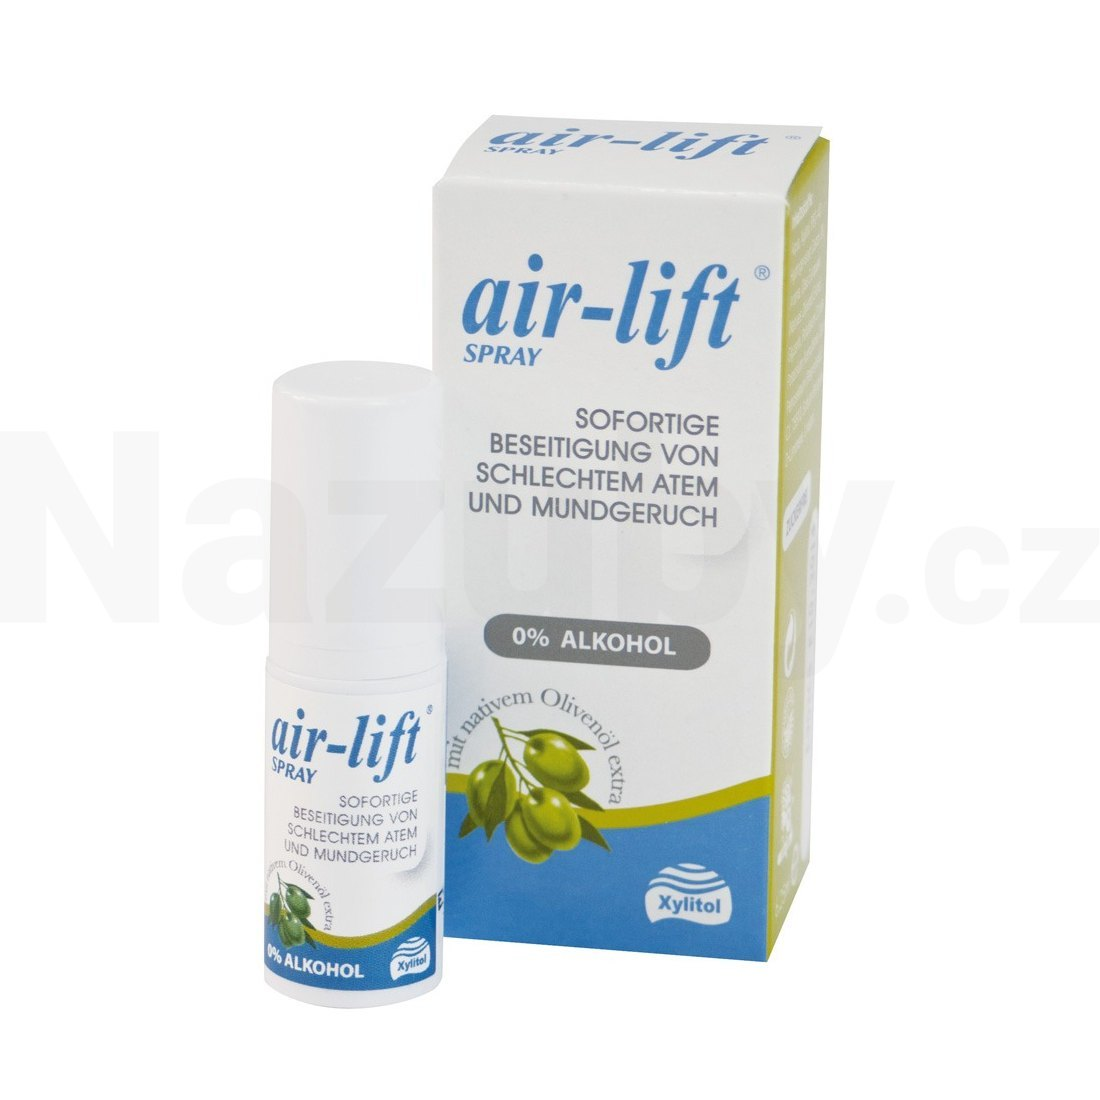 Air-lift svěží dech spray 15 ml